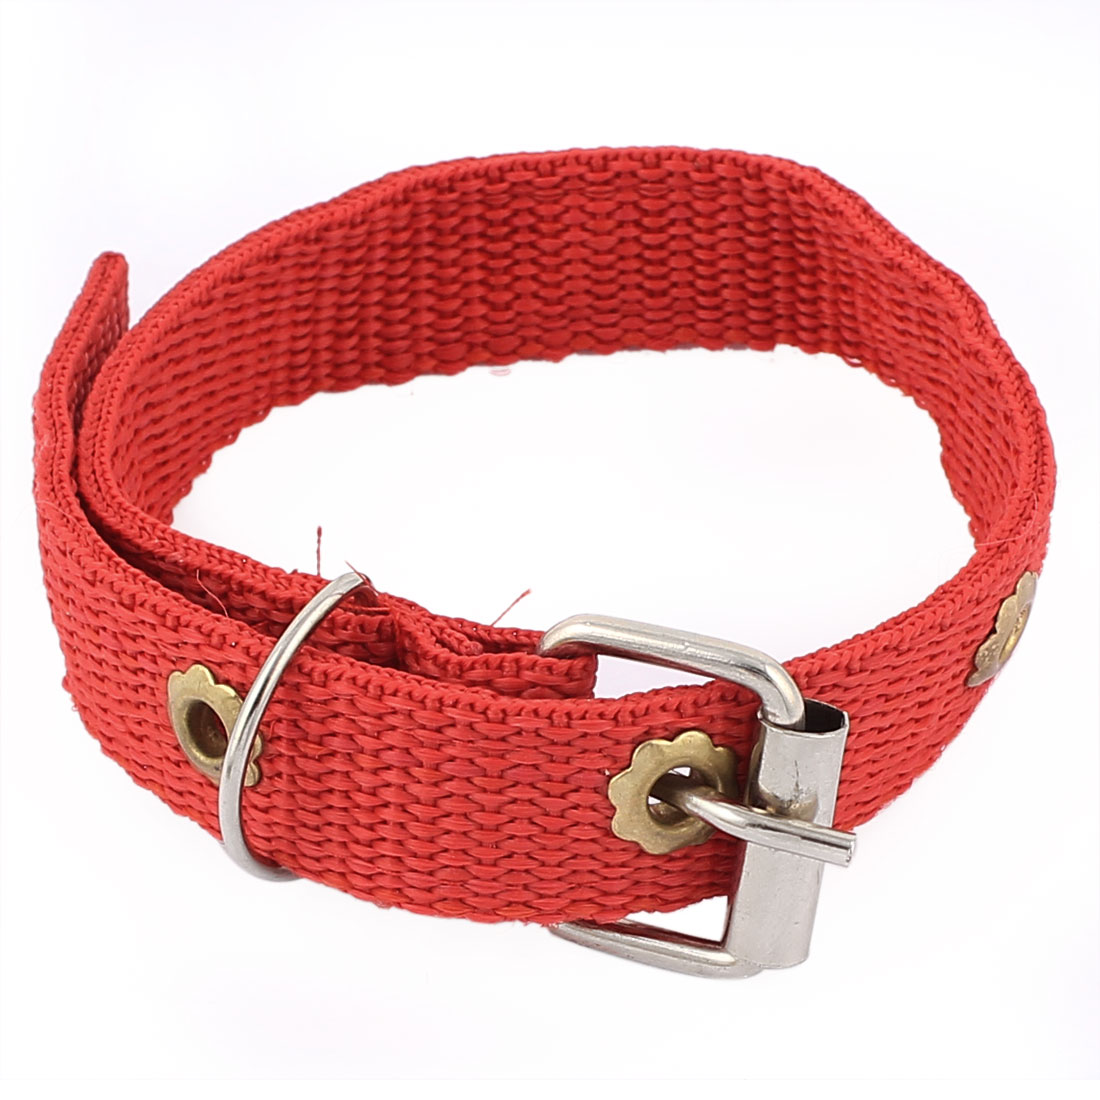 Single Pin Buckle Pet Dog Adjustable Collar Red 32cm Length